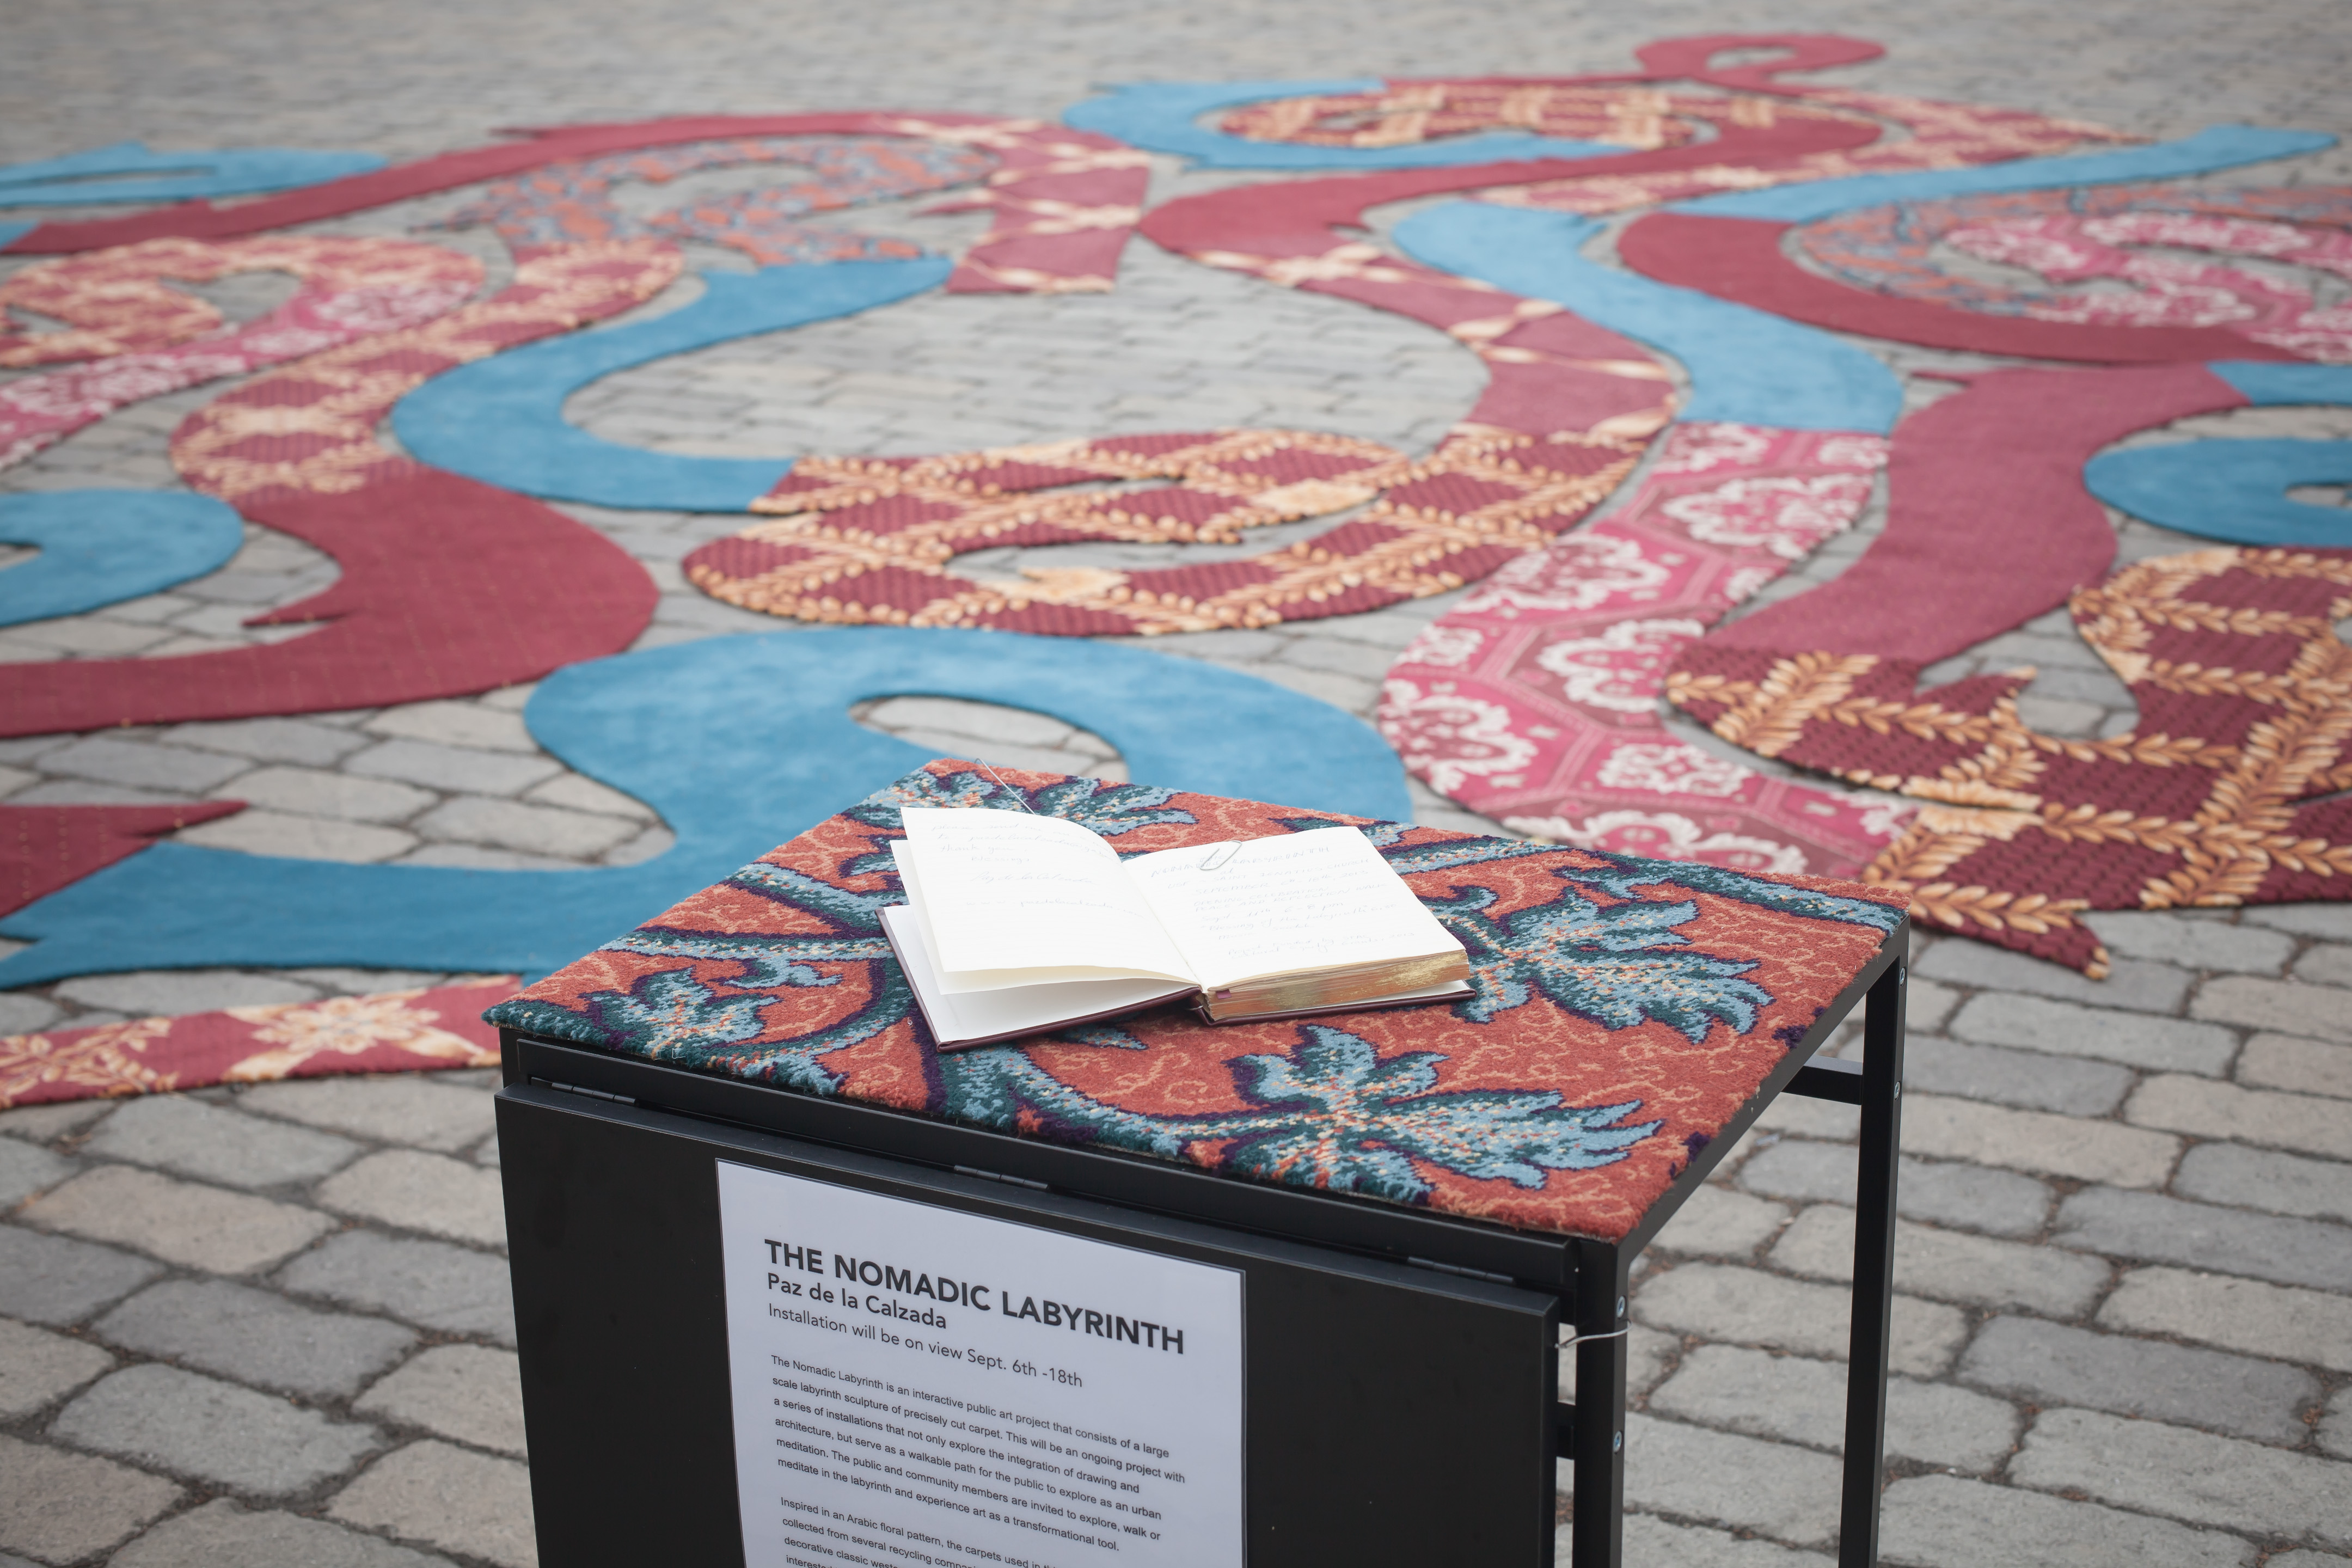 Picture of The Nomadic Labyrinth - a Public Art Project